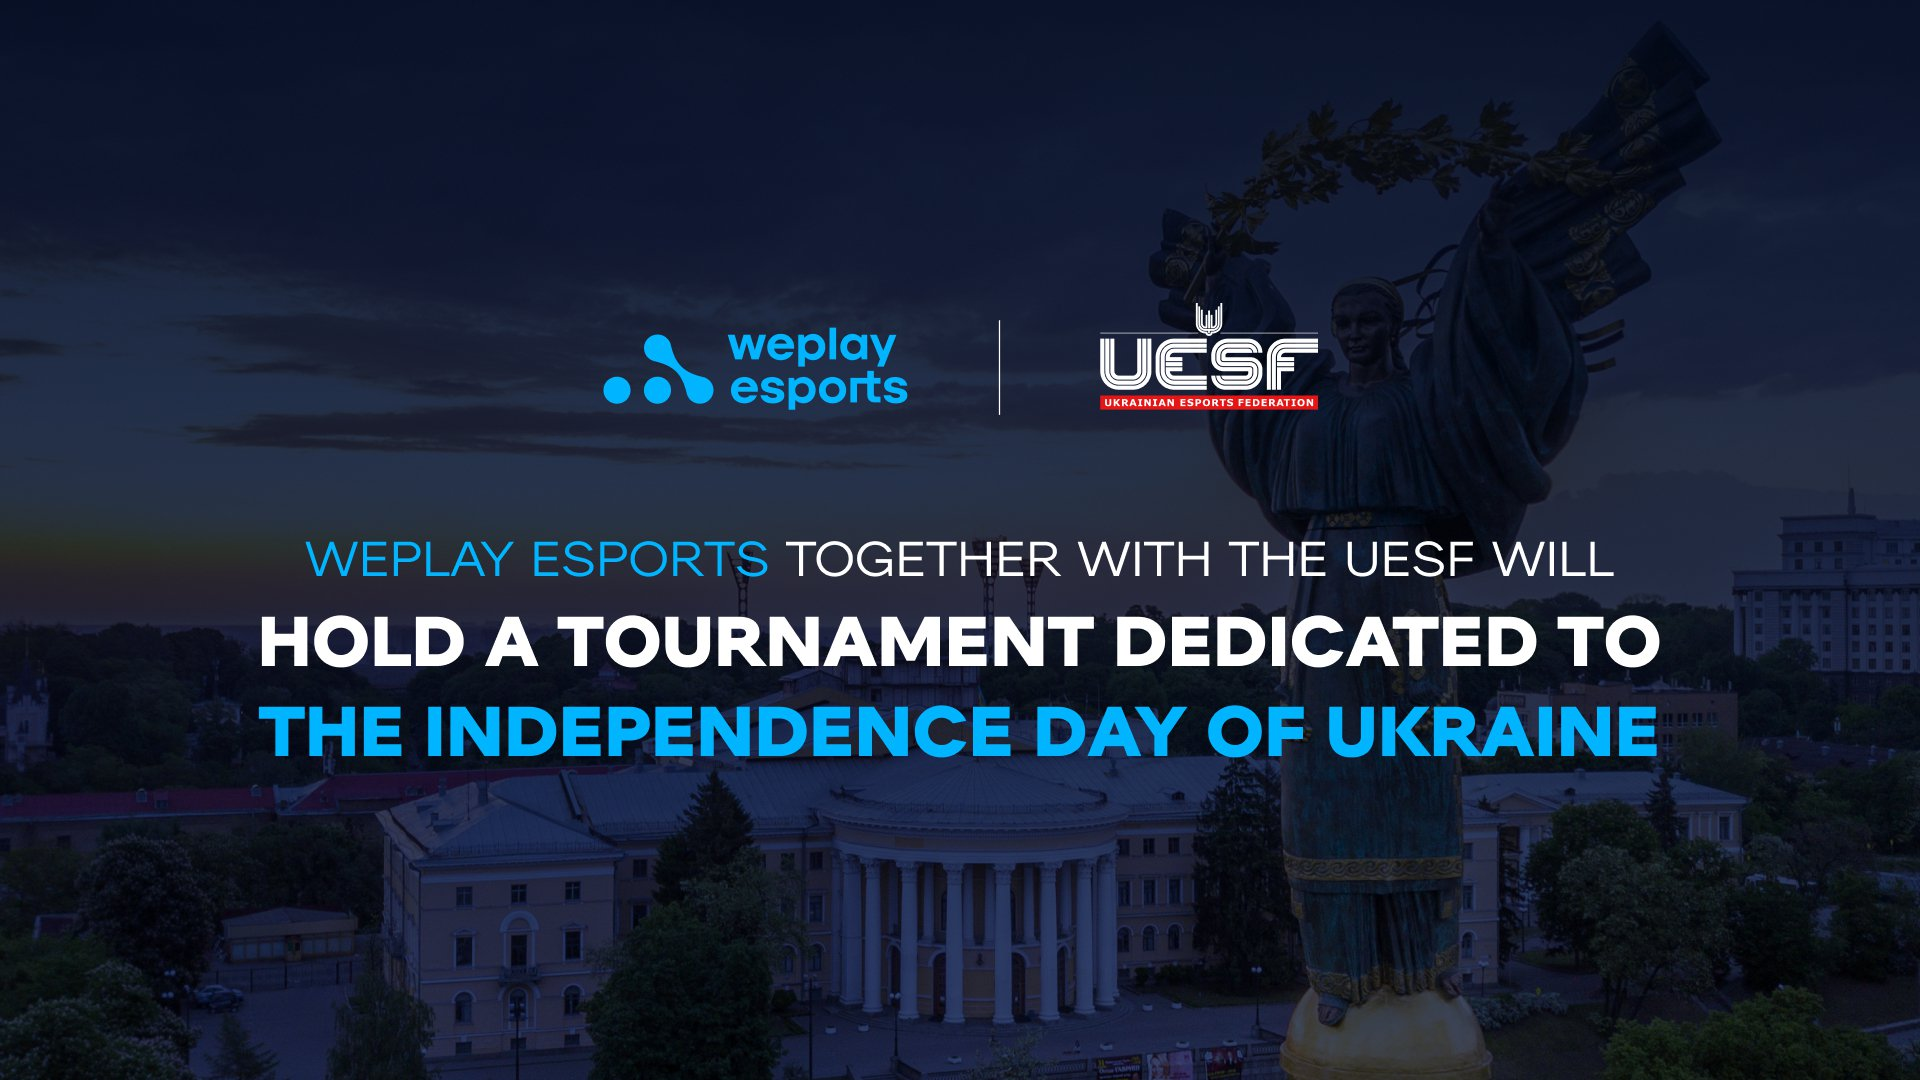 WePlay Esports together with the UESF will hold a tournament dedicated to the Independence Day of Ukraine. Image: WePlay Holding